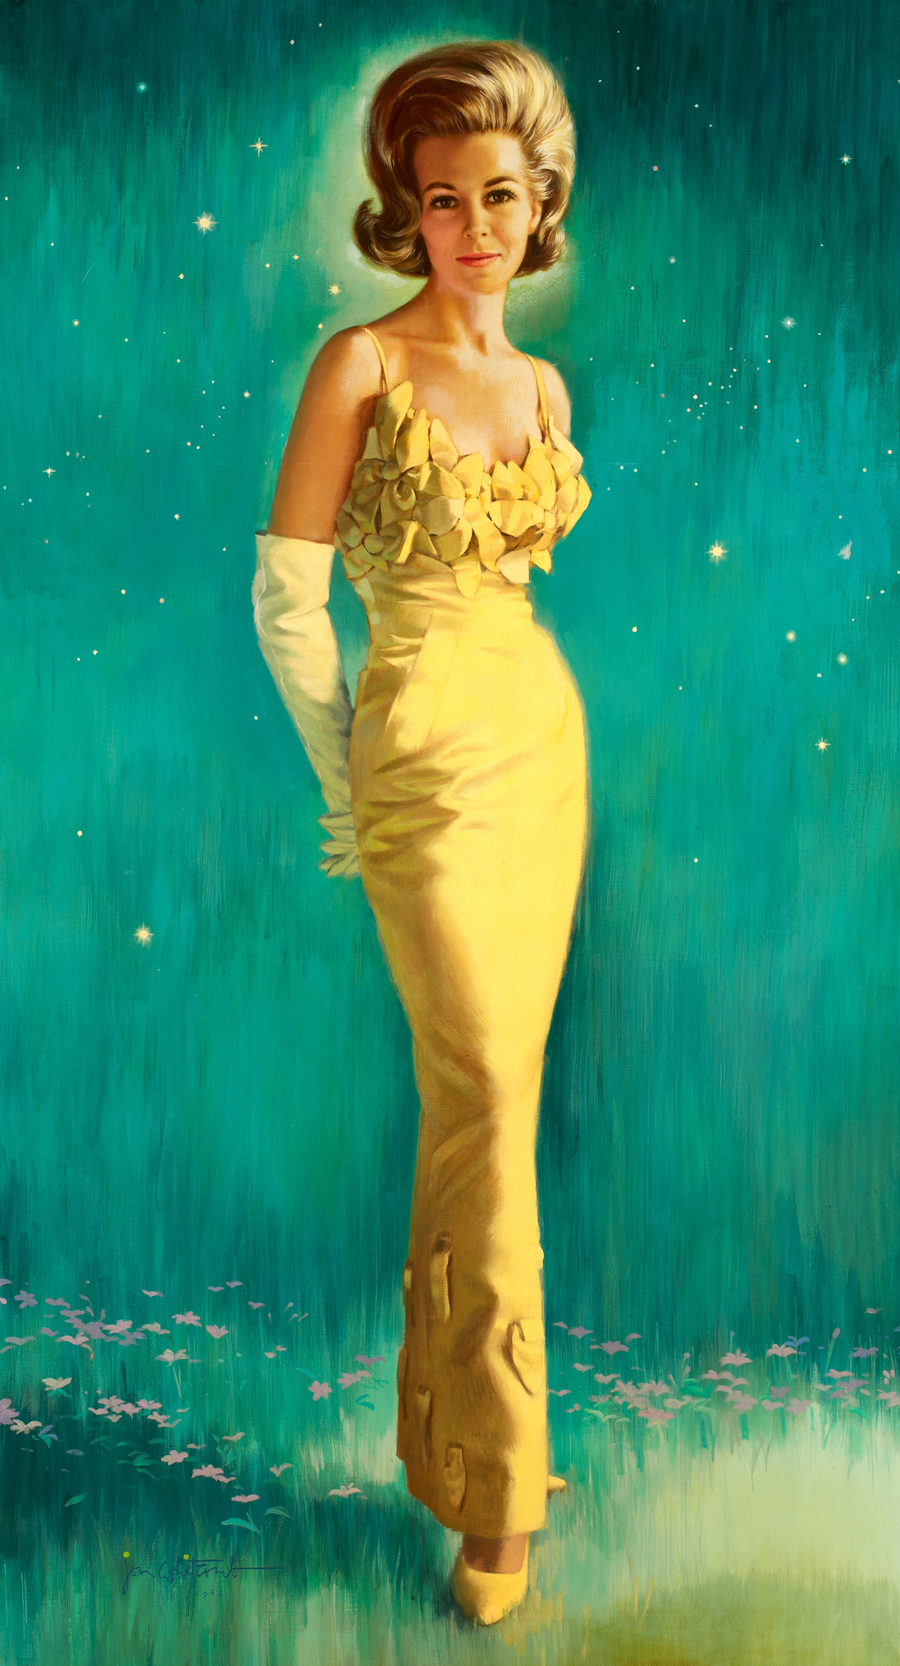 The Evening Gown